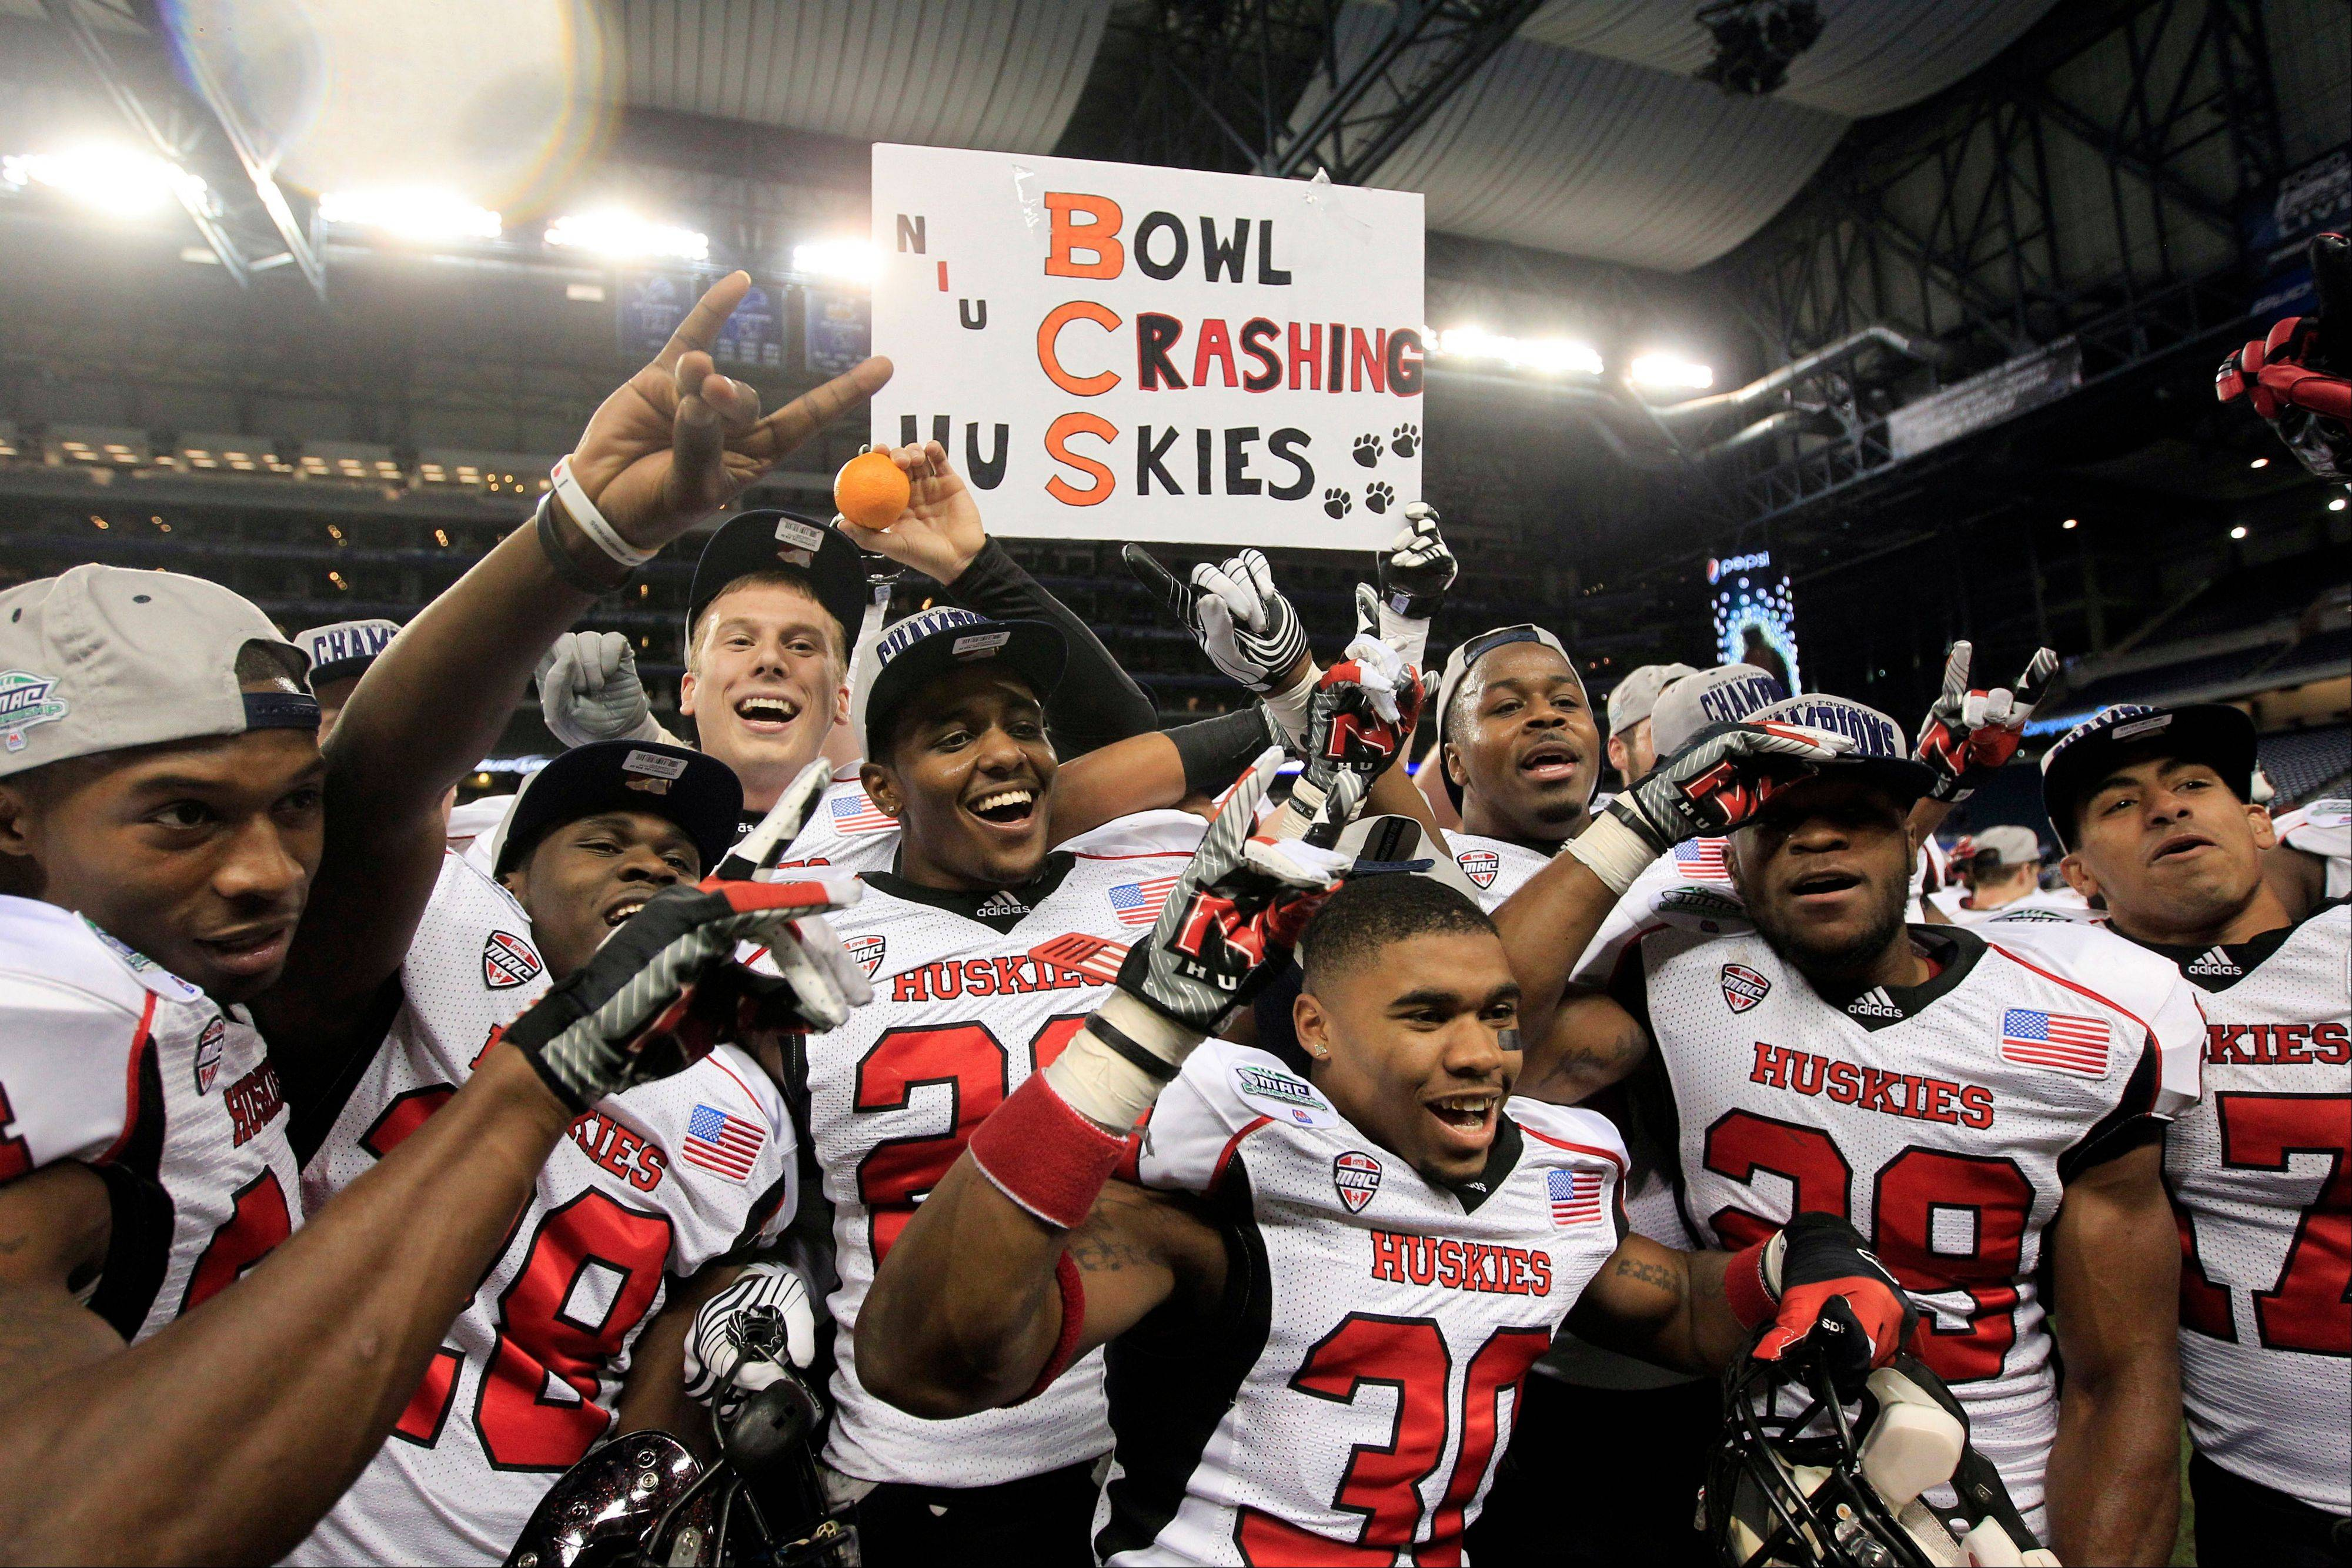 Northern Illinois had plenty to celebrate last fall after defeating Kent State in double overtime in the Mid-American Conference championship in Detroit. The Huskies are hoping for a return trip this season.